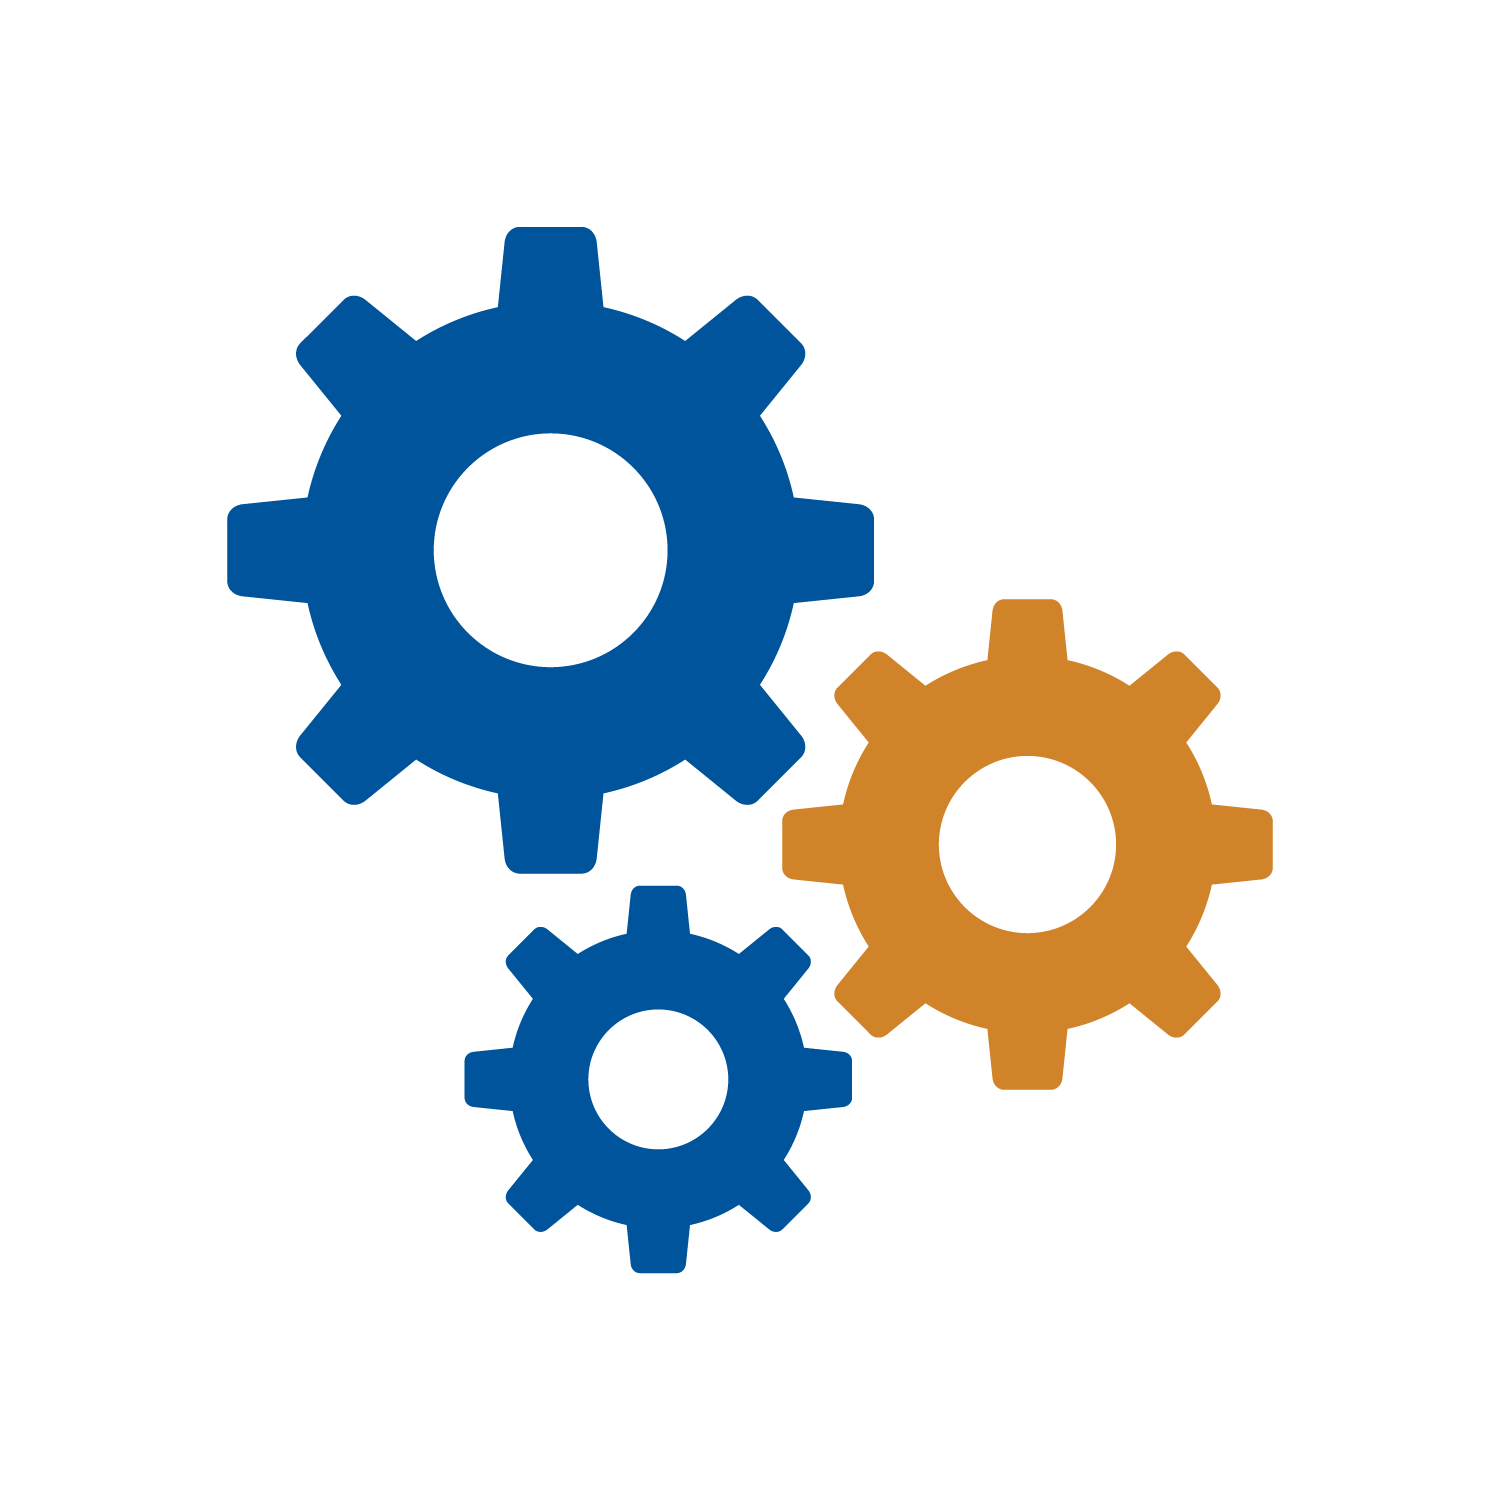 Blue and orange gears icons for Automation